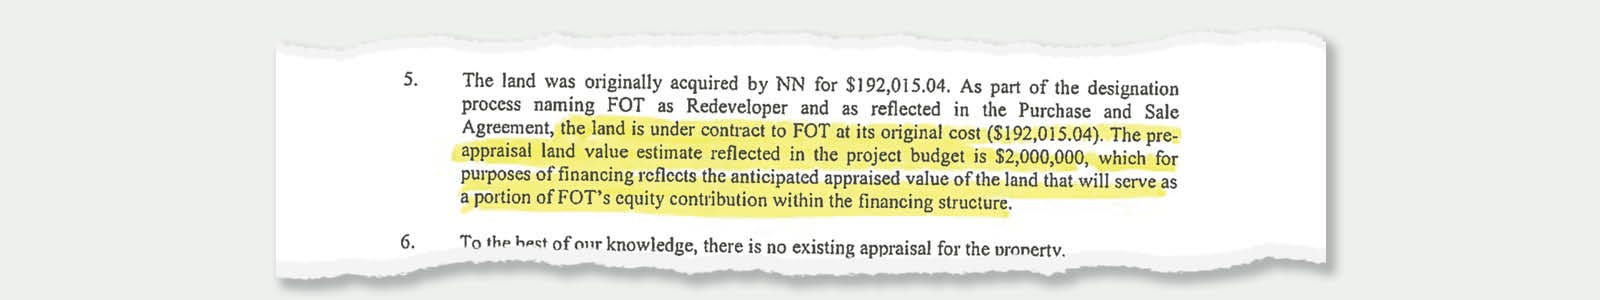 """Letter by then TEAM CEO Ryan Hill to state officials saying that a support group would purchase land for $192,000 that was expected to be valued for much more. The difference would be an """"equity contribution"""" to a project. The land was eventually appraised at $1.3 million. The public is covering the higher price, and not the actual sales price."""